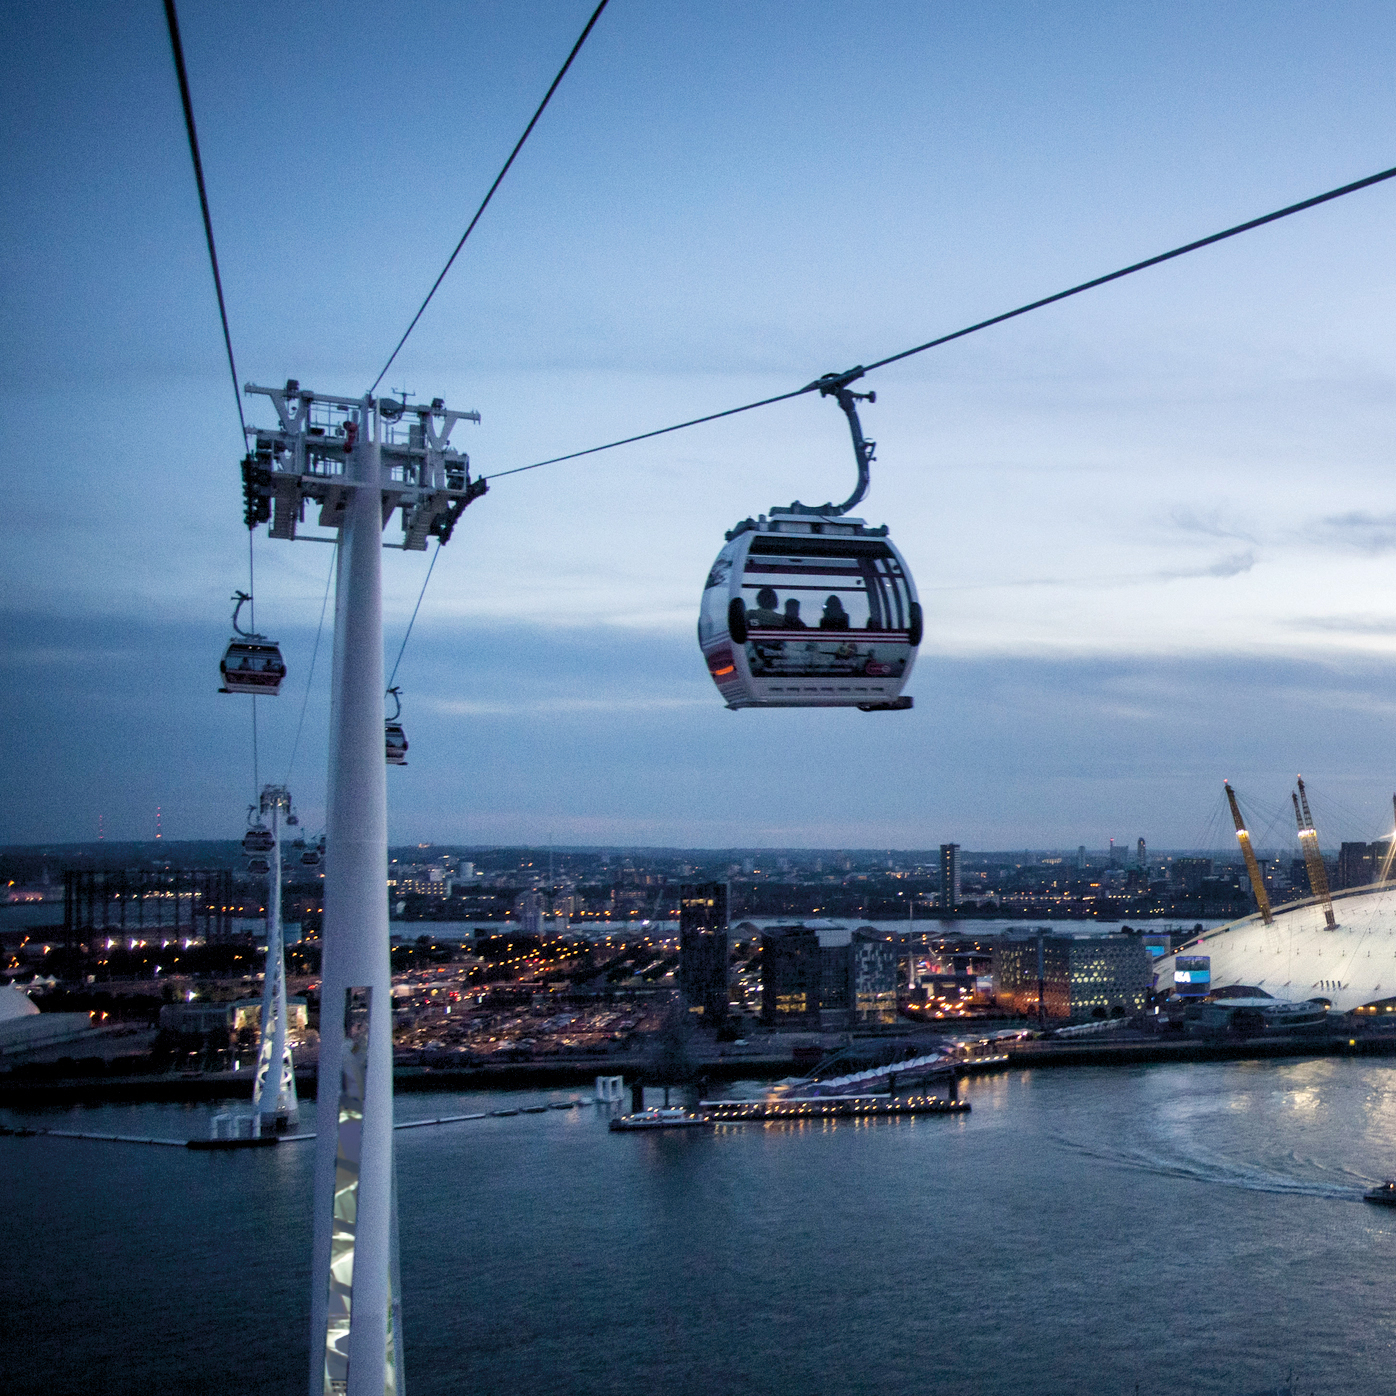 london-cable-car-lighting - Copia